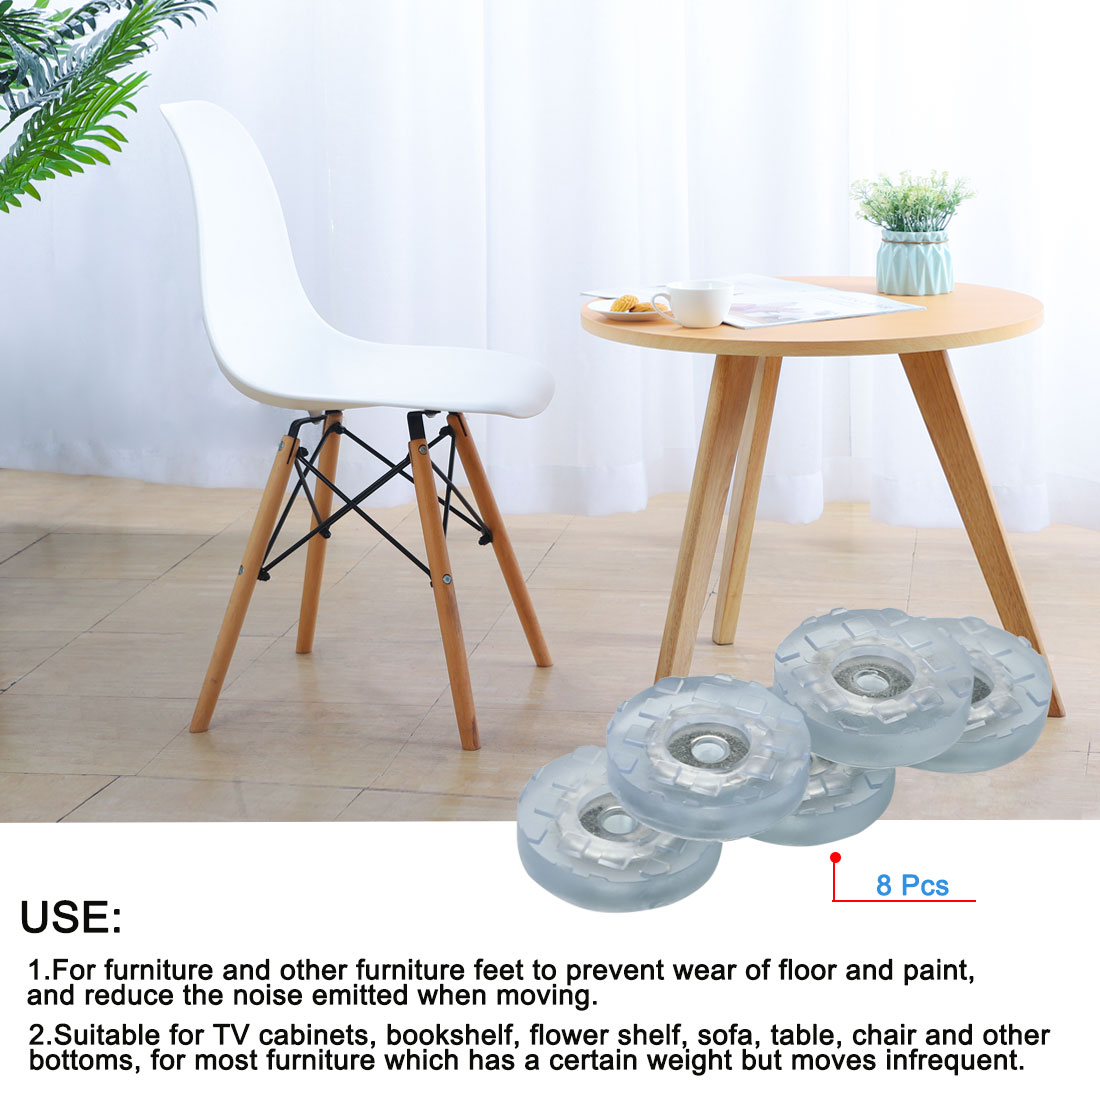 8pcs Round Rubber Feet Insert Metal Washer Floor Furniture Leg Protector 30mm - image 5 of 7